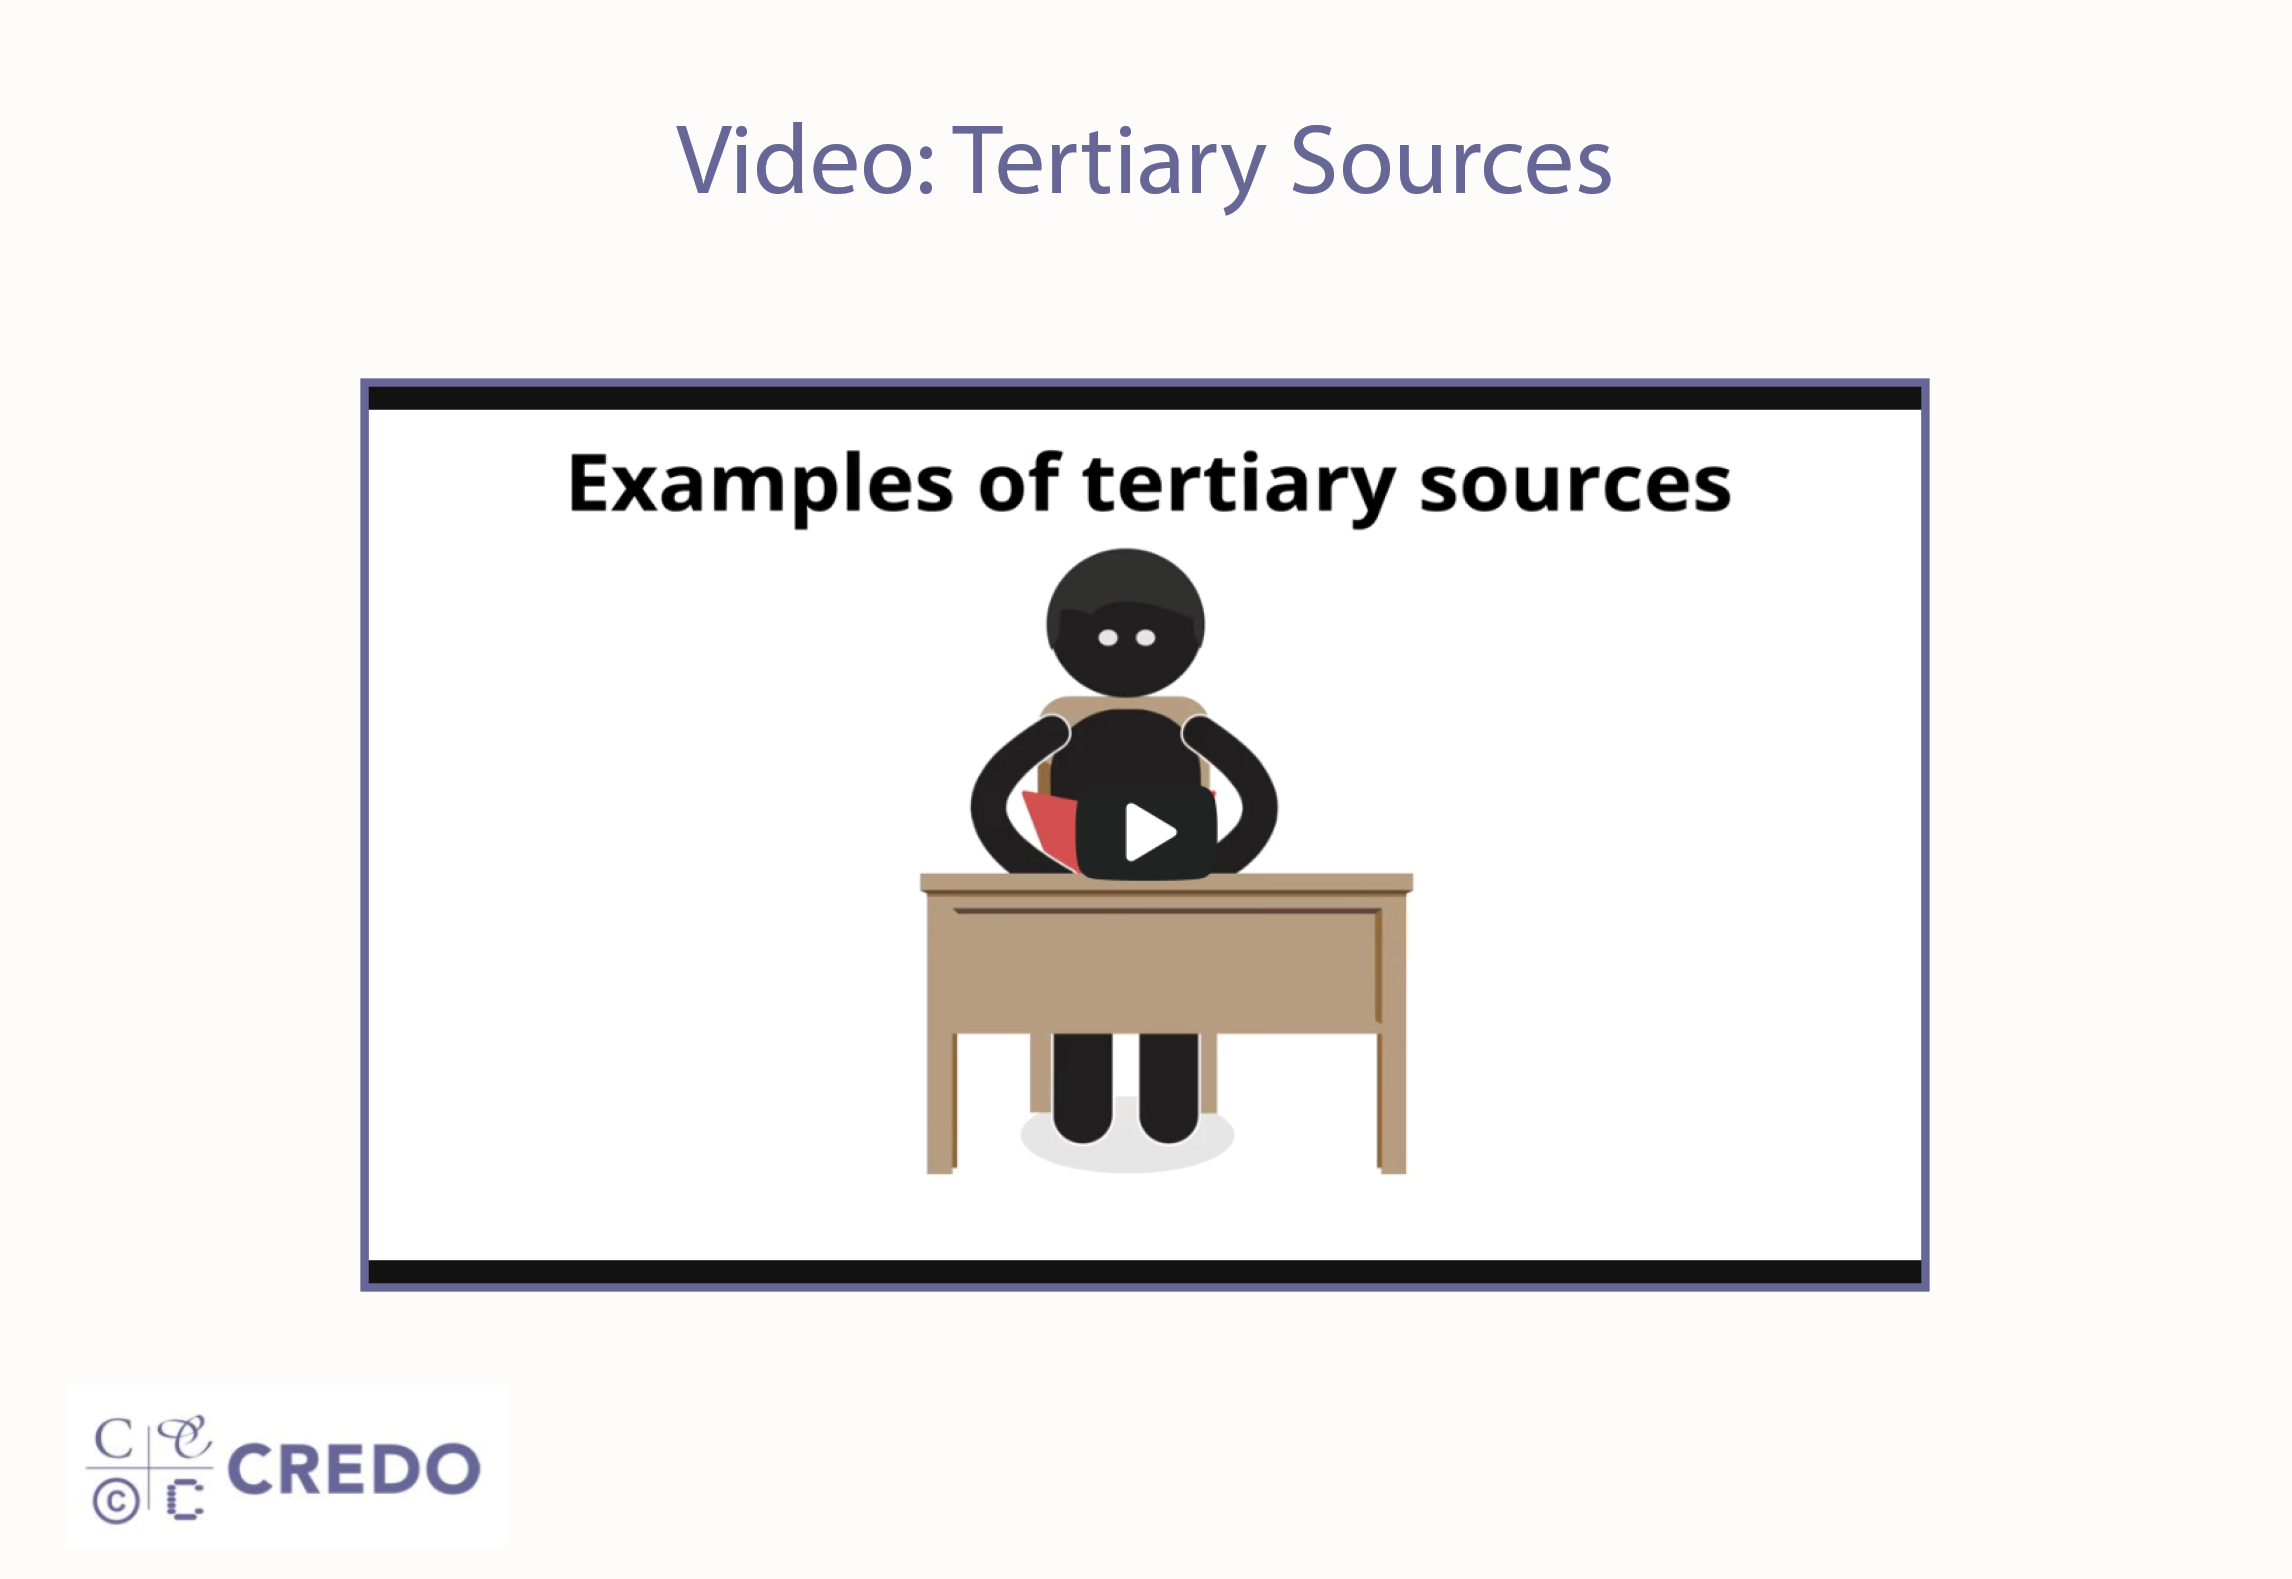 Video: Tertiary Sources